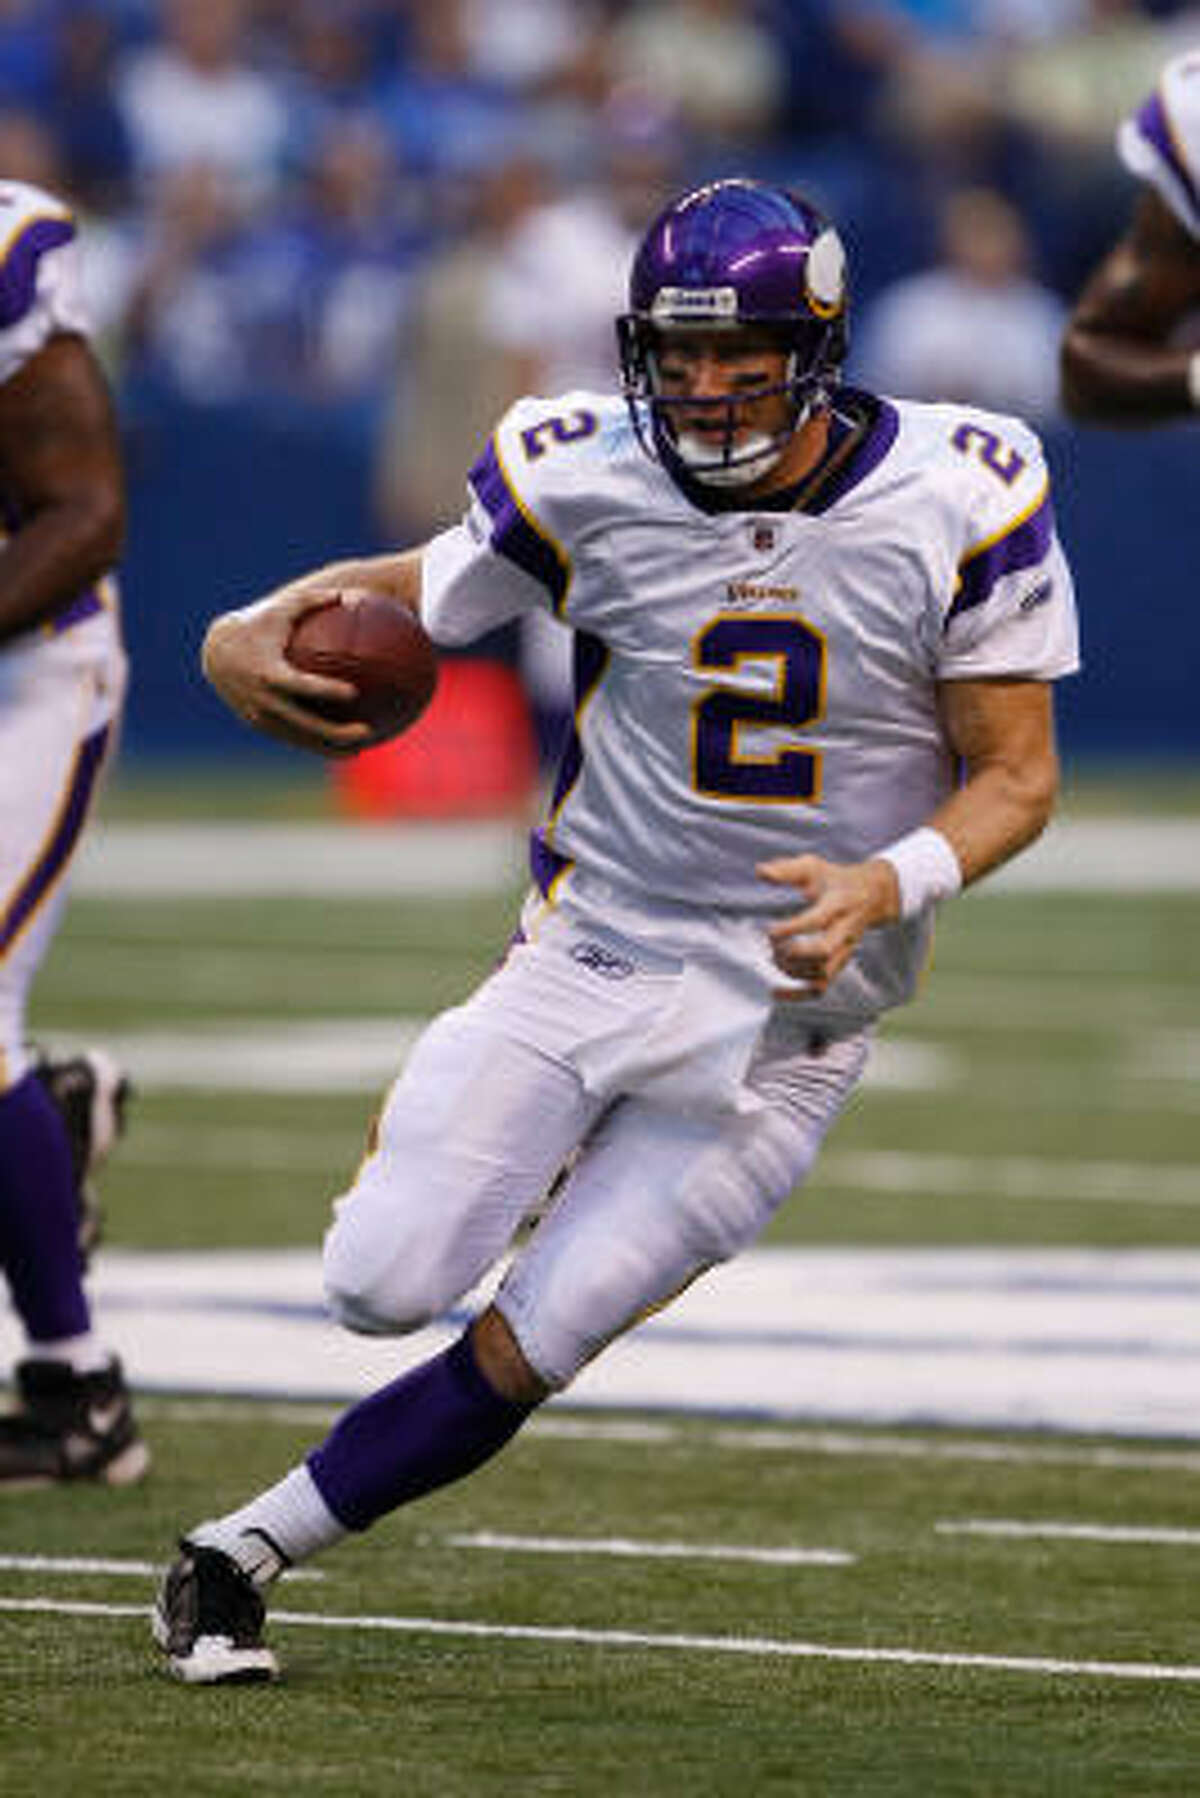 Locally, there's excitement about Brett Favre, of course, but there also is an appreciation for Sage Rosenfels, who was 6-4 as a starter the last two seasons when Matt Schaub was injured or ill.